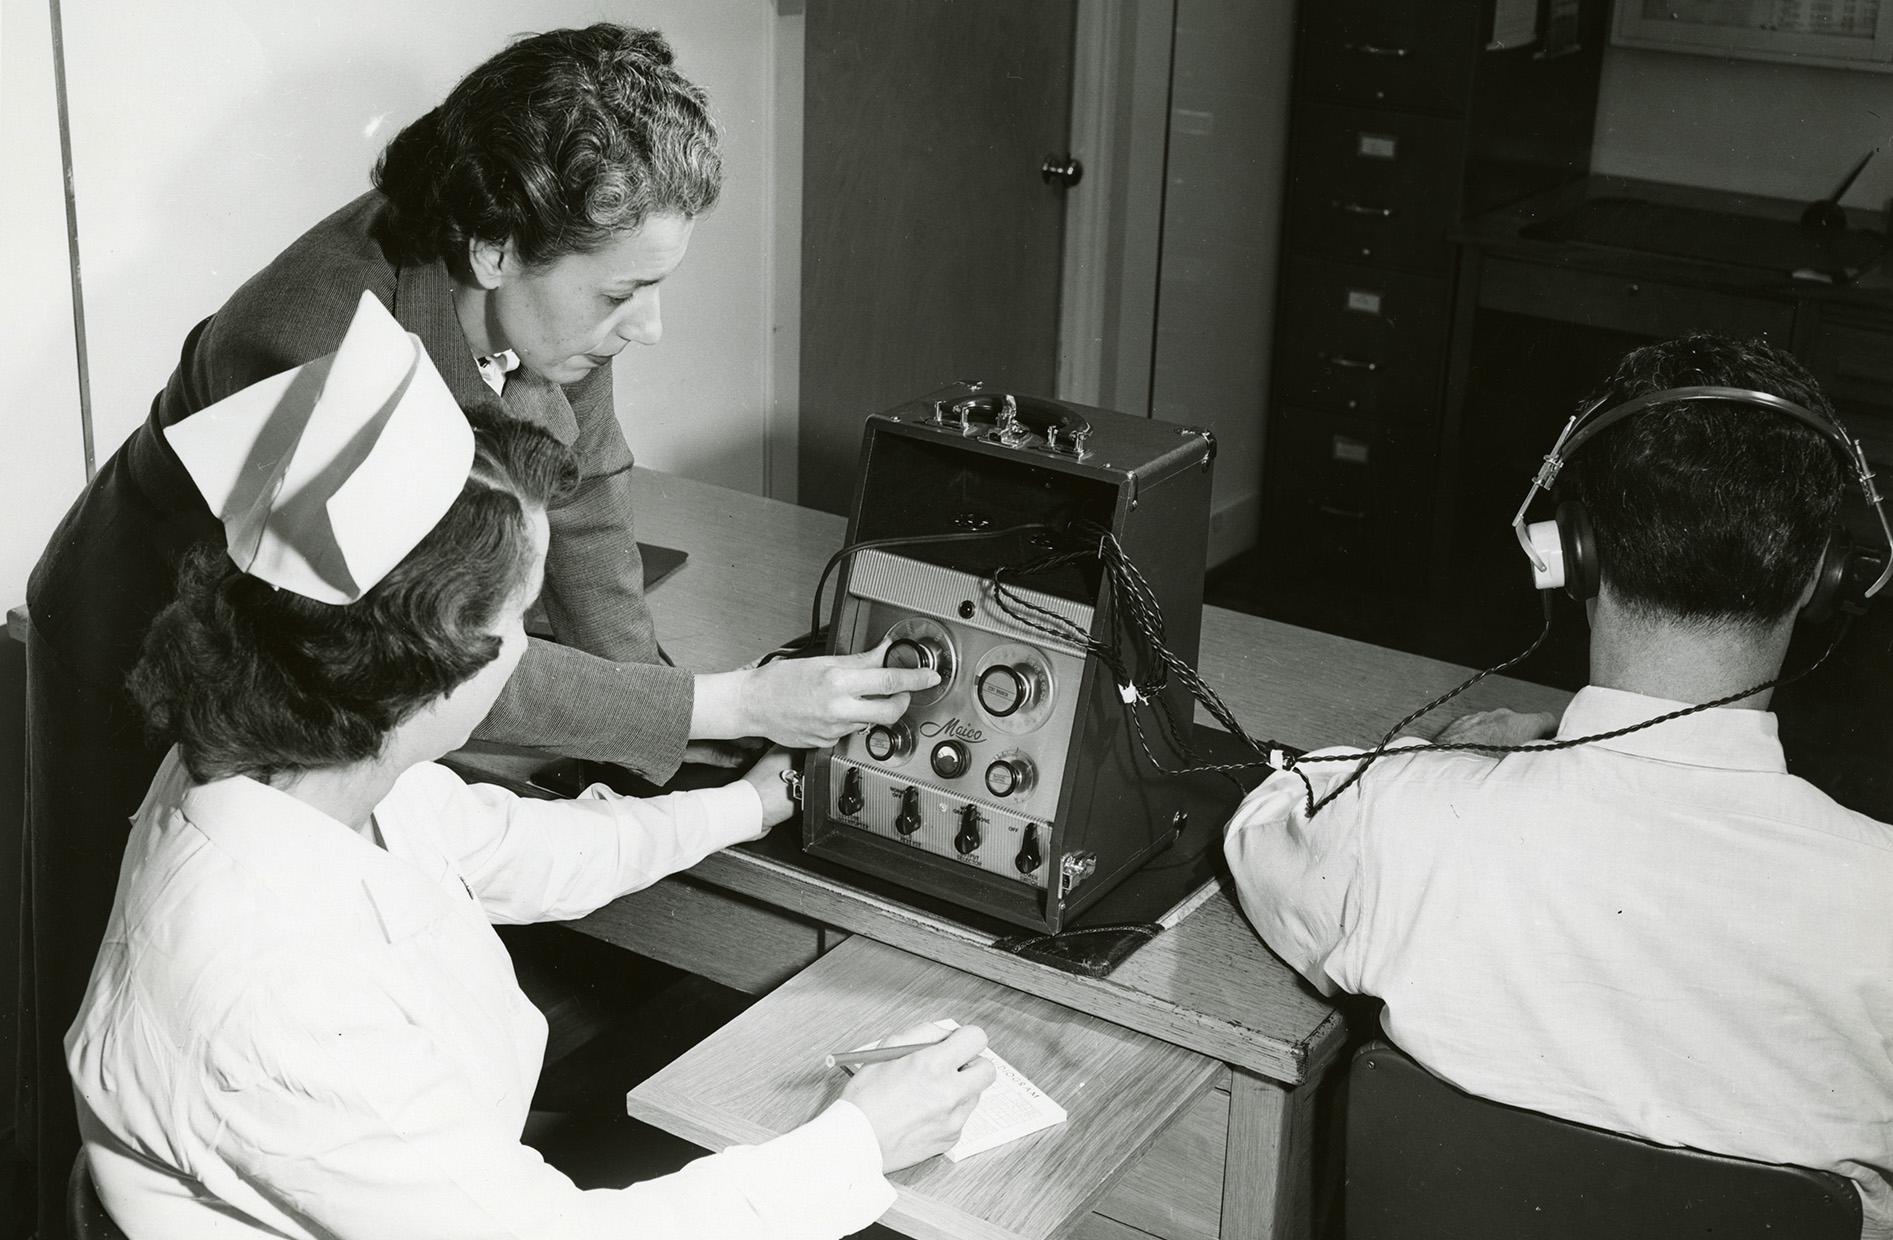 An Employers Mutual Occupational Health Consultant administering a hearing test c. 1960. Photograph courtesy of the Marathon County Historical Society.